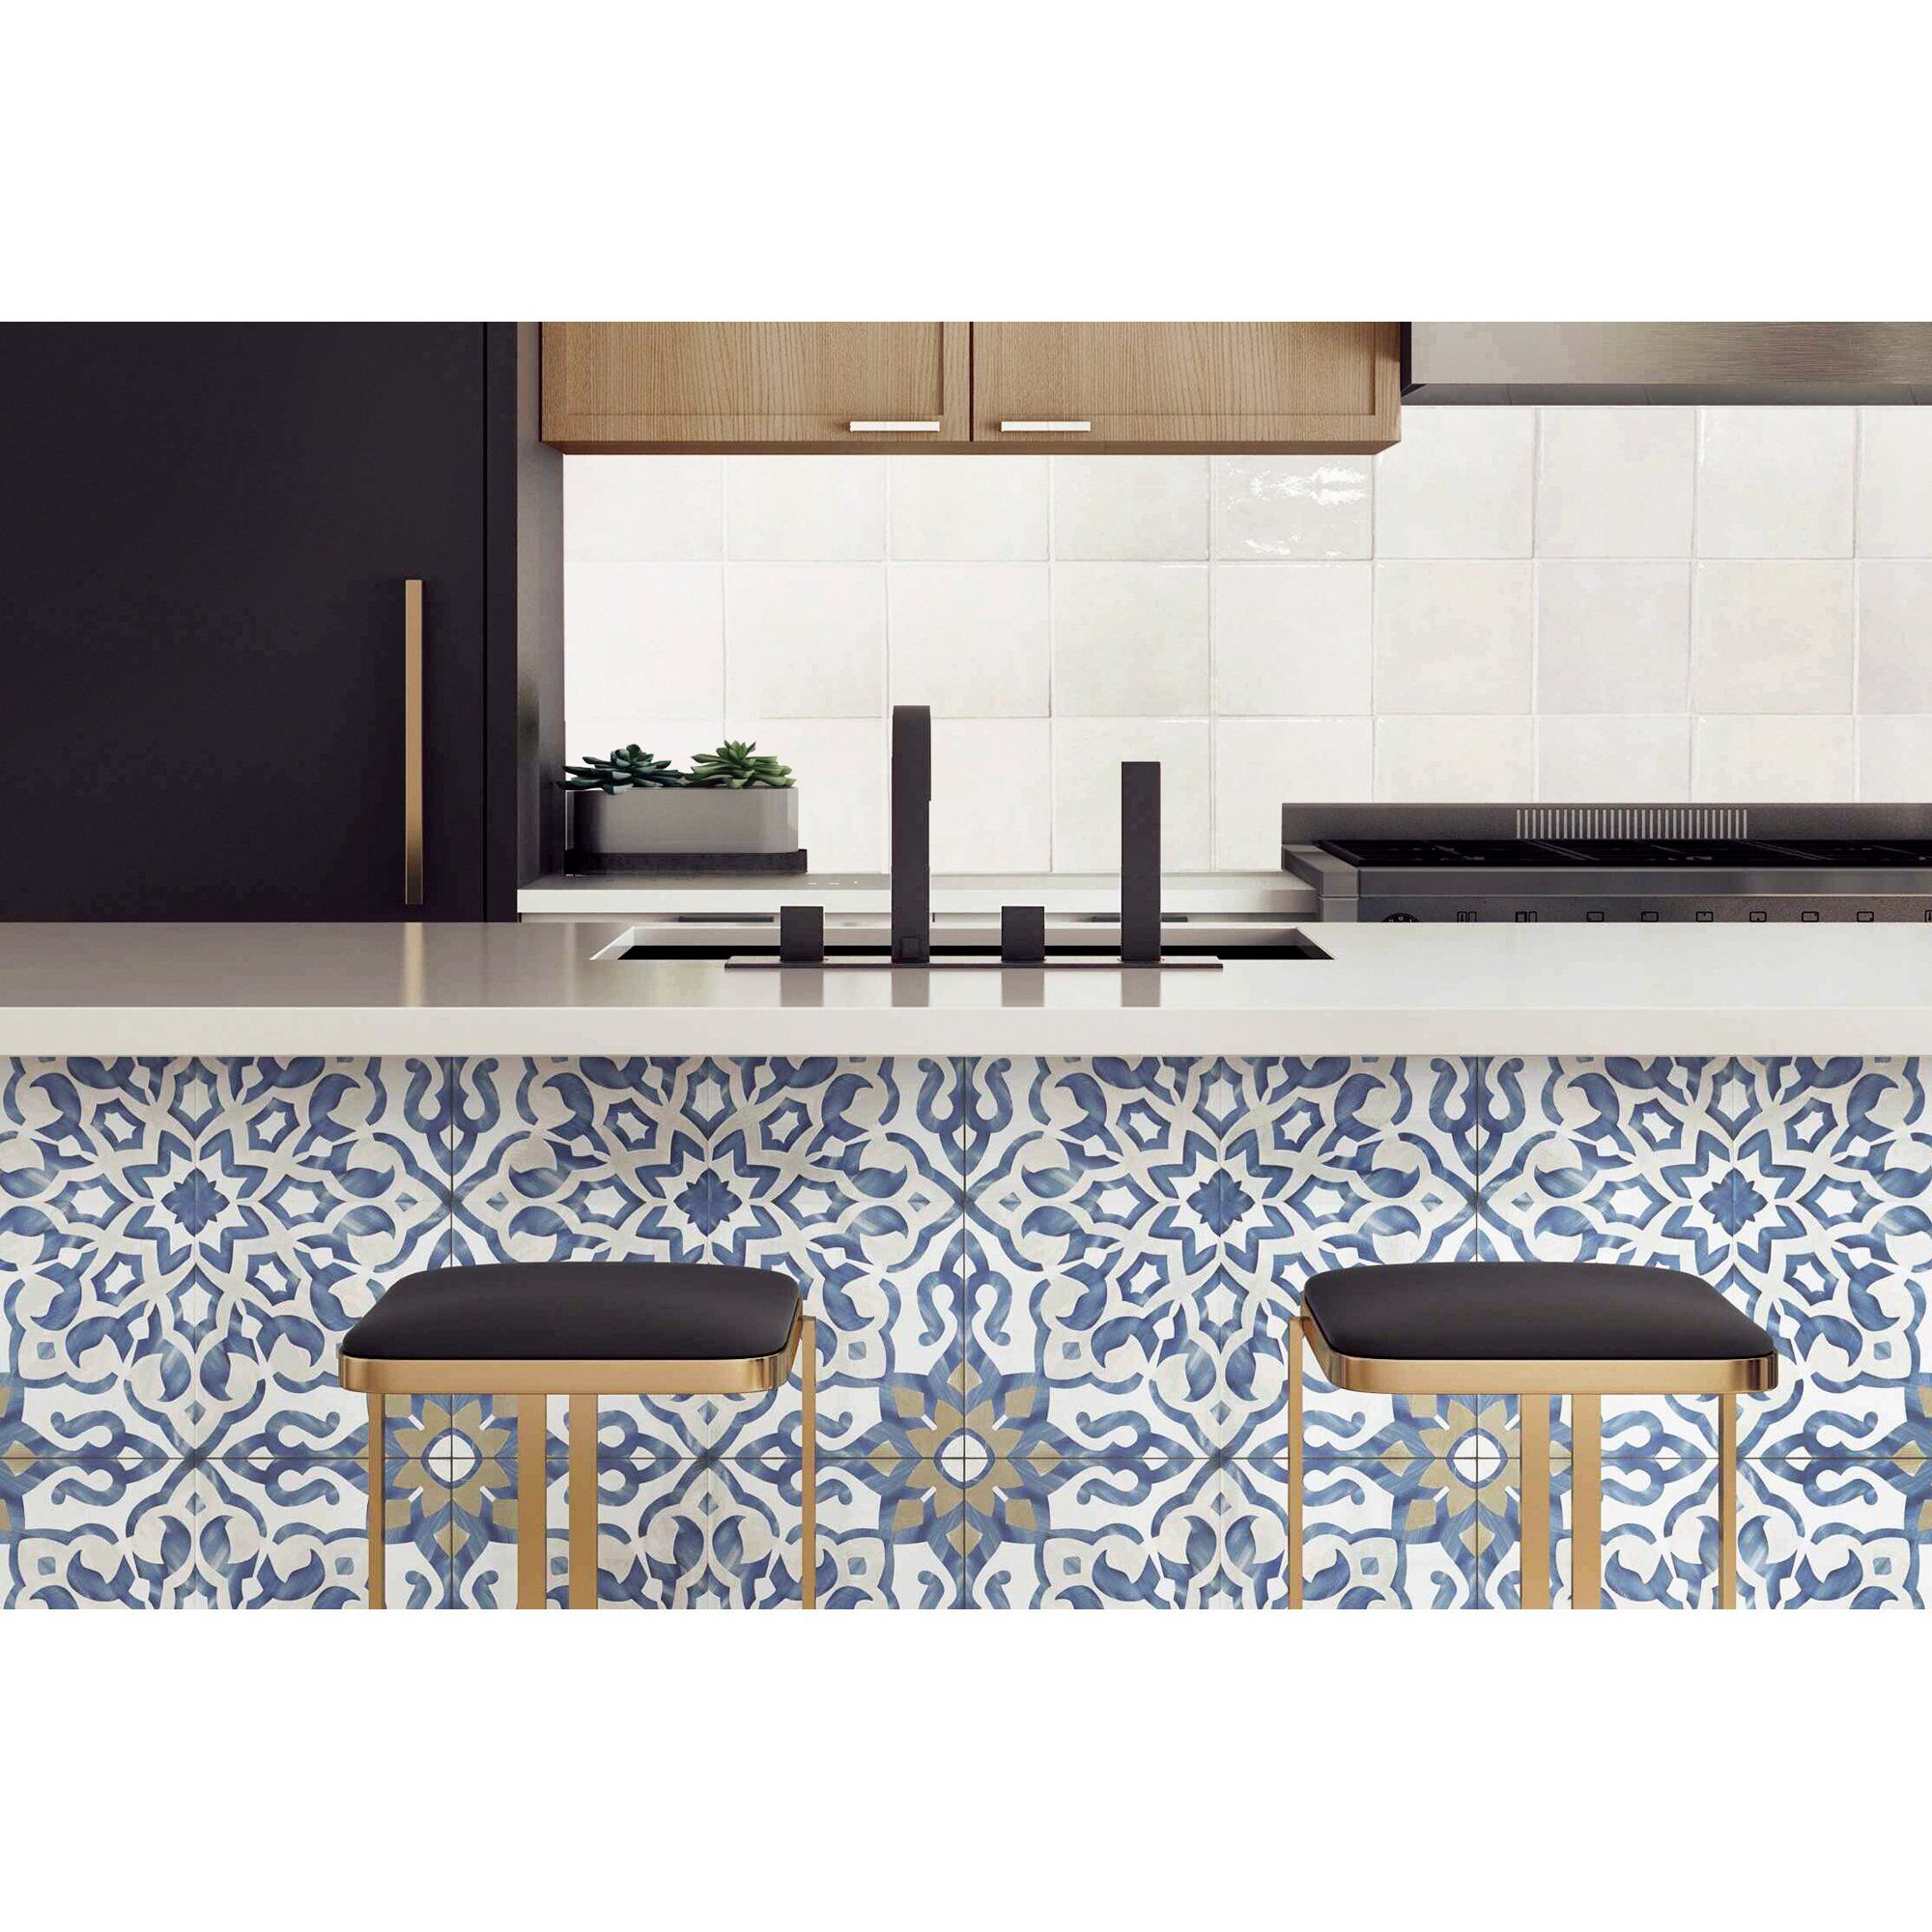 Villa Azul 10 X 10 Floral Decorative Porcelain Tile In Blue 13 45 Sqft Ctn Walmart Com In 2020 Kitchen Remodel Kitchen Flooring Kitchen Tiles